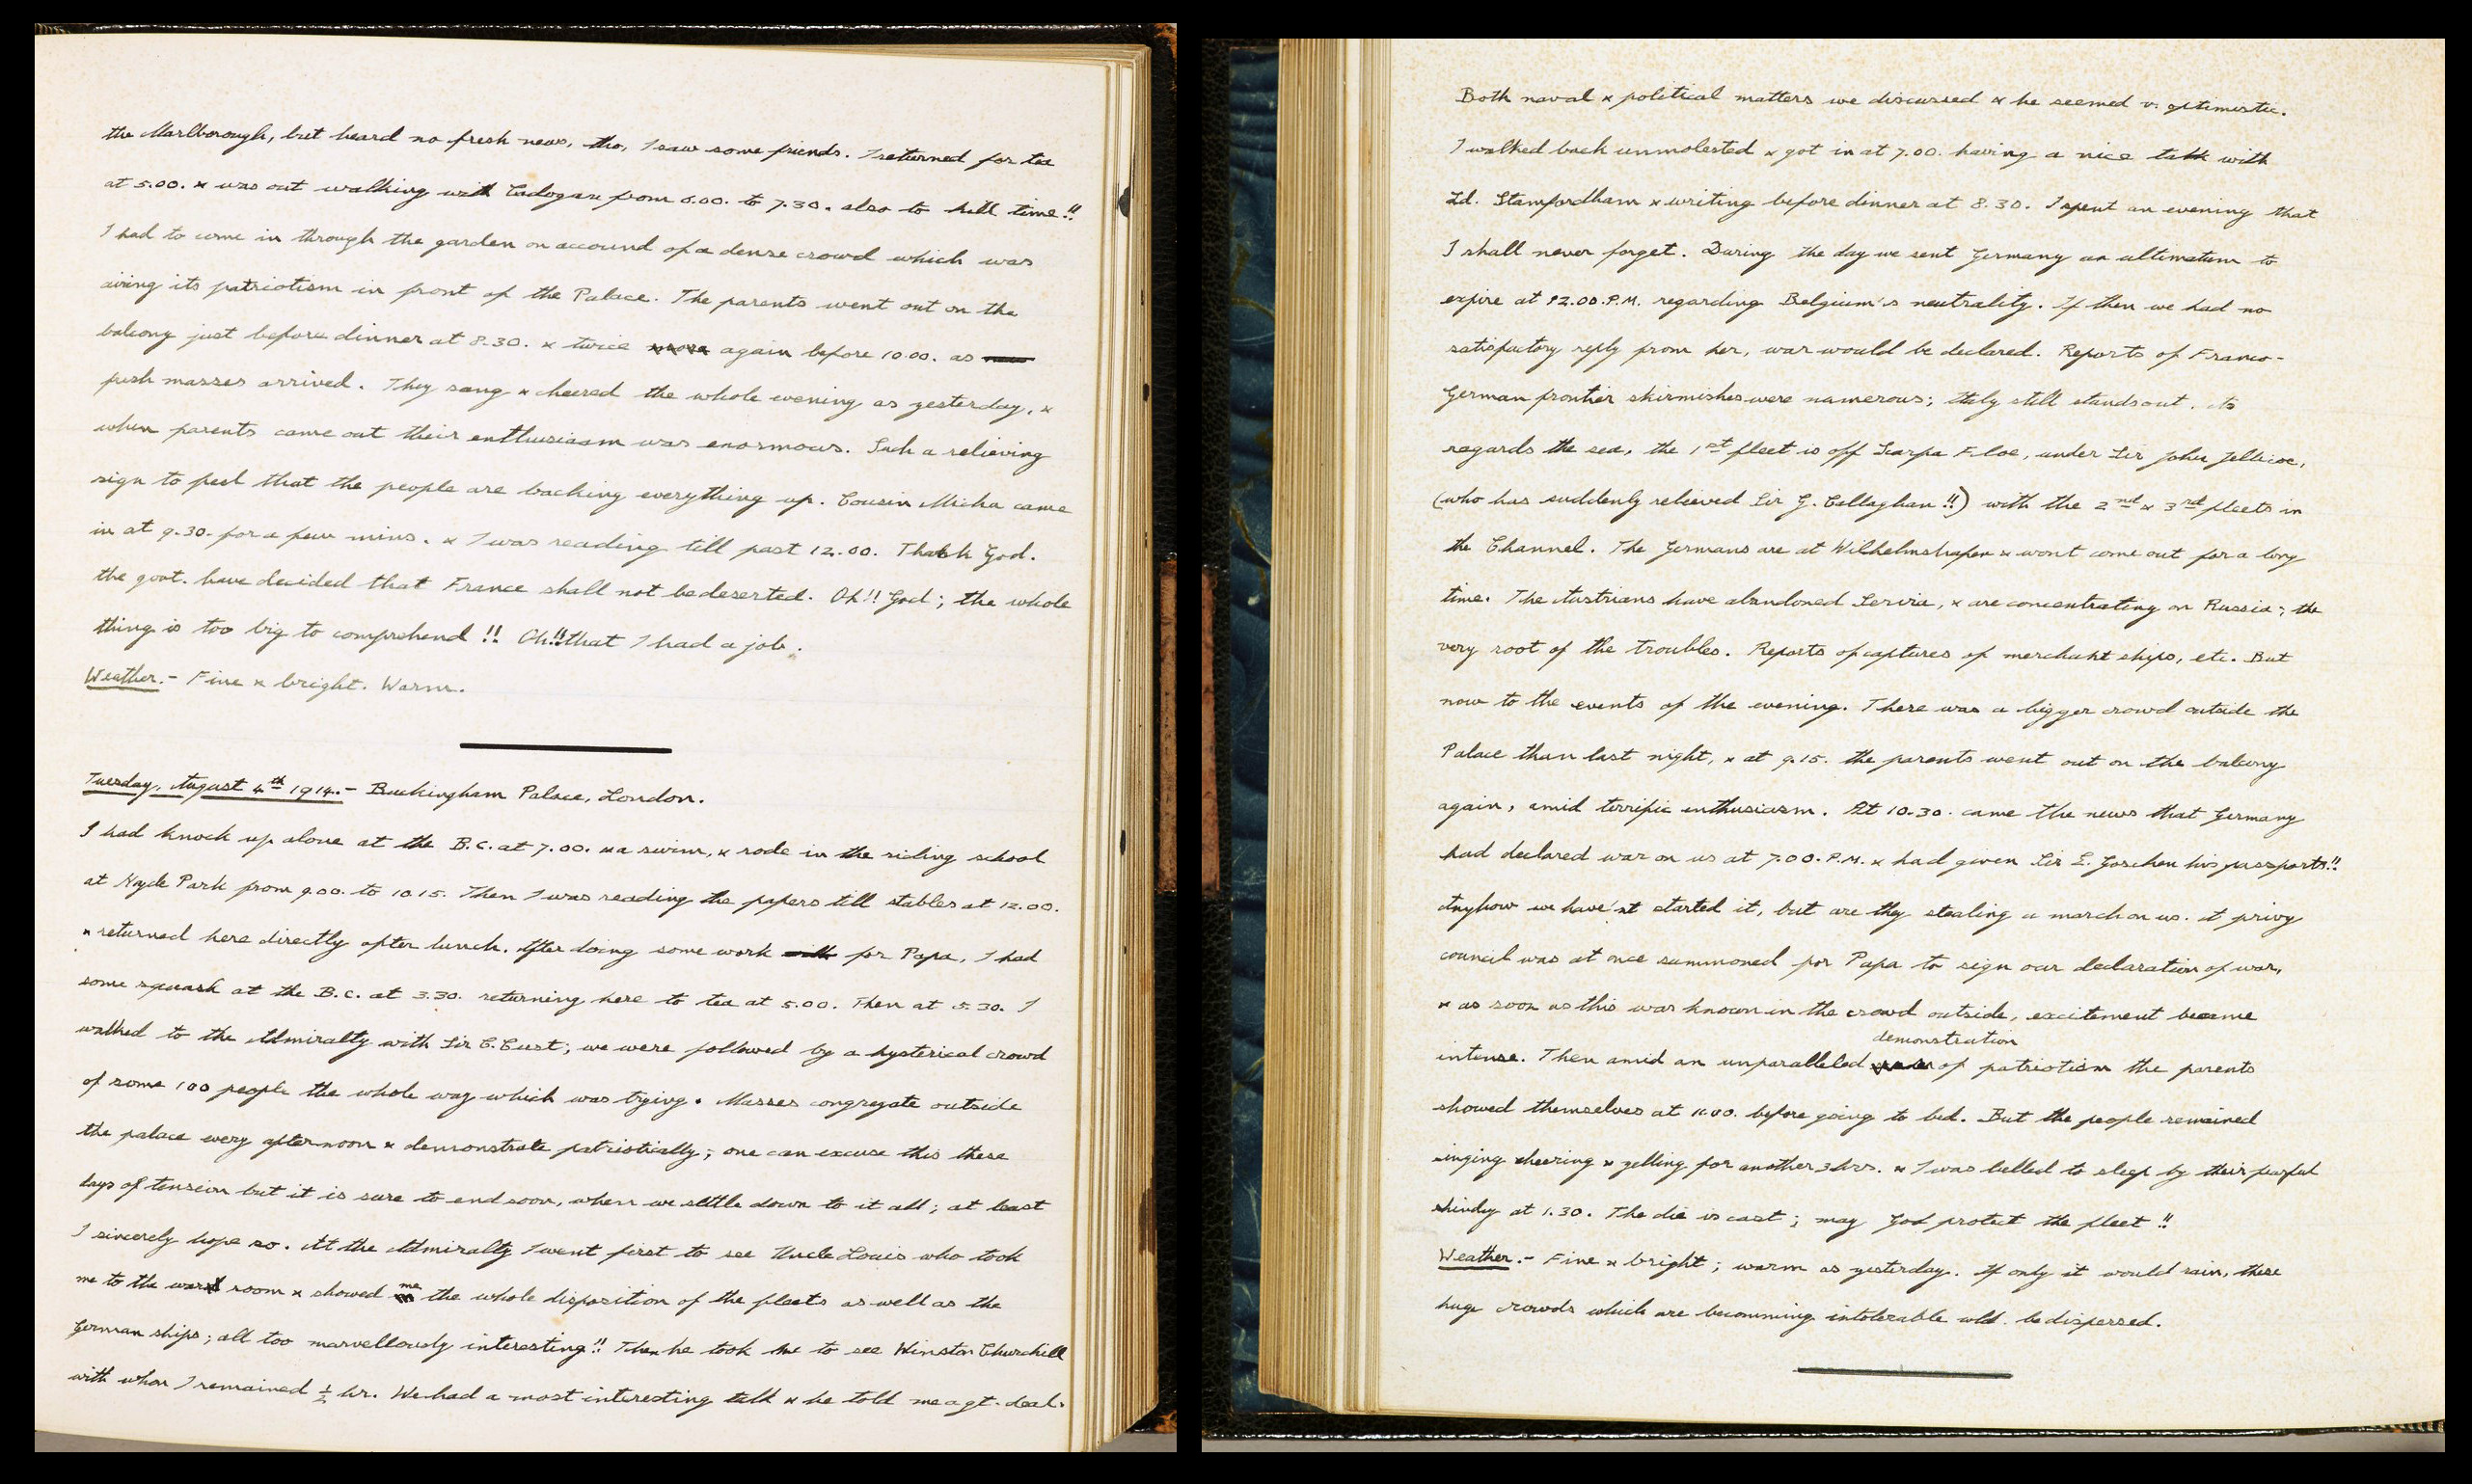 Edward, Prince of Wales Diary entry 4 August 1914